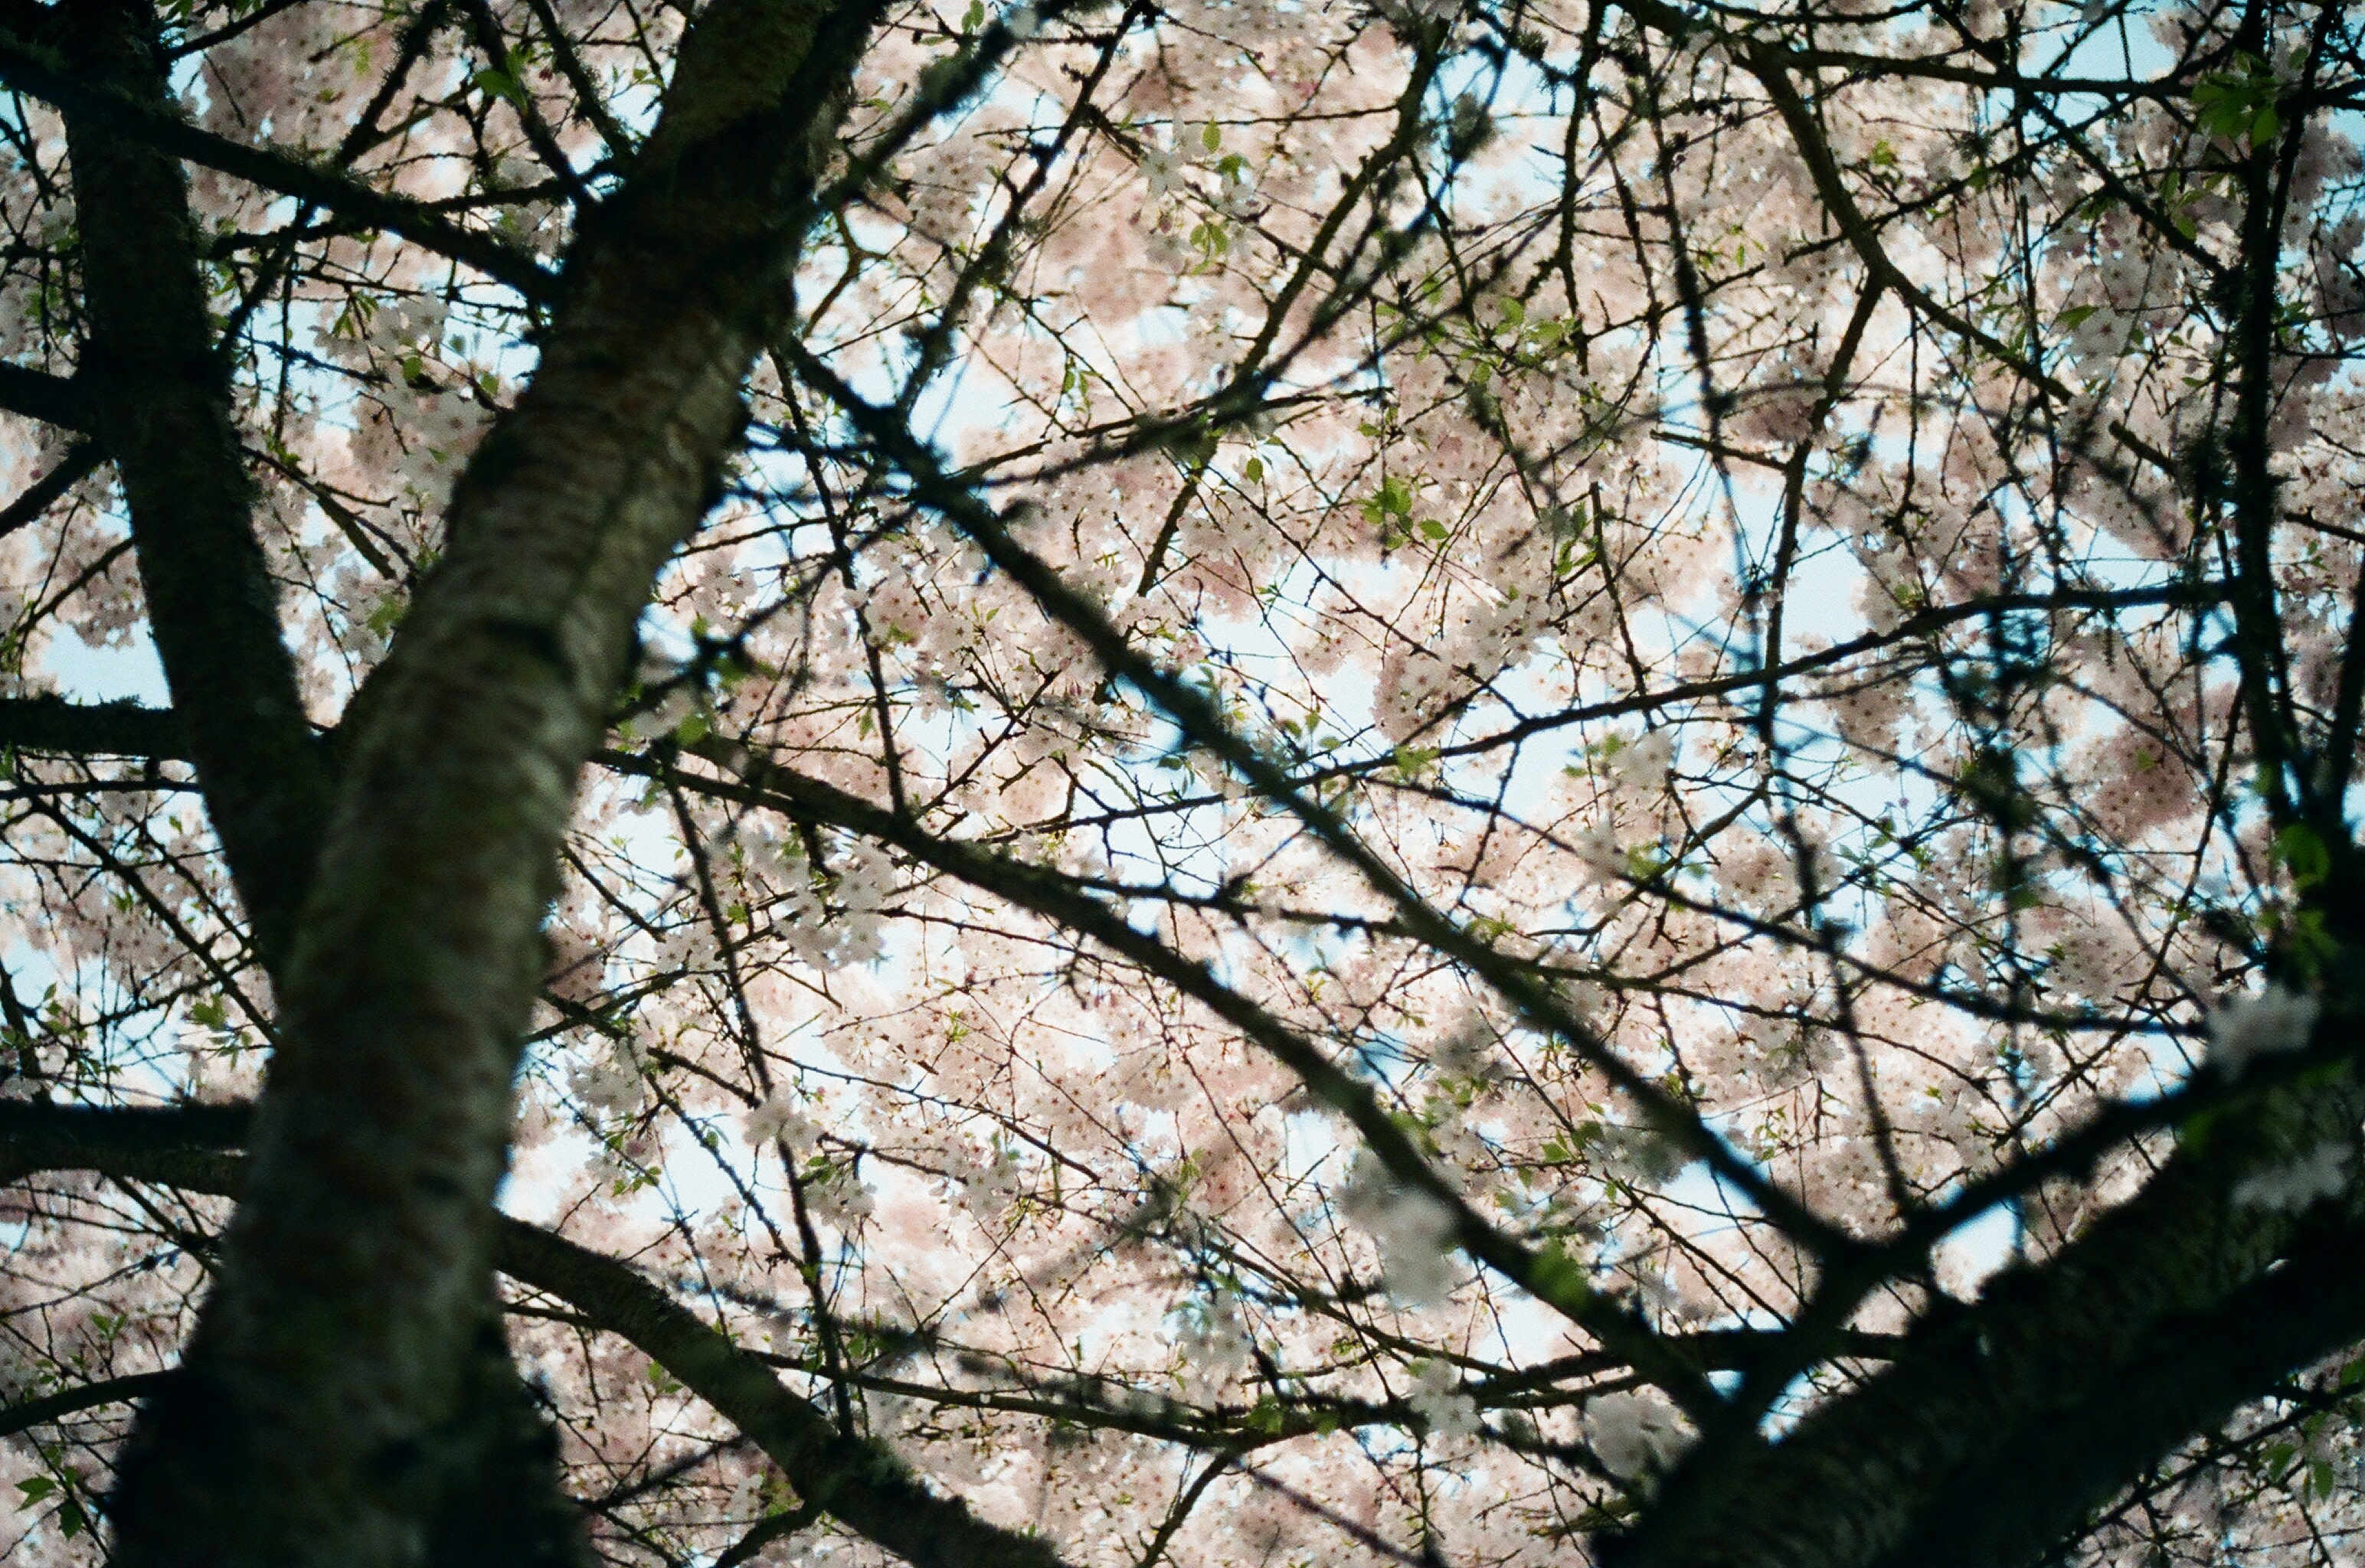 Crisscrossed tree branches reveal cherry blossoms and blue sky.